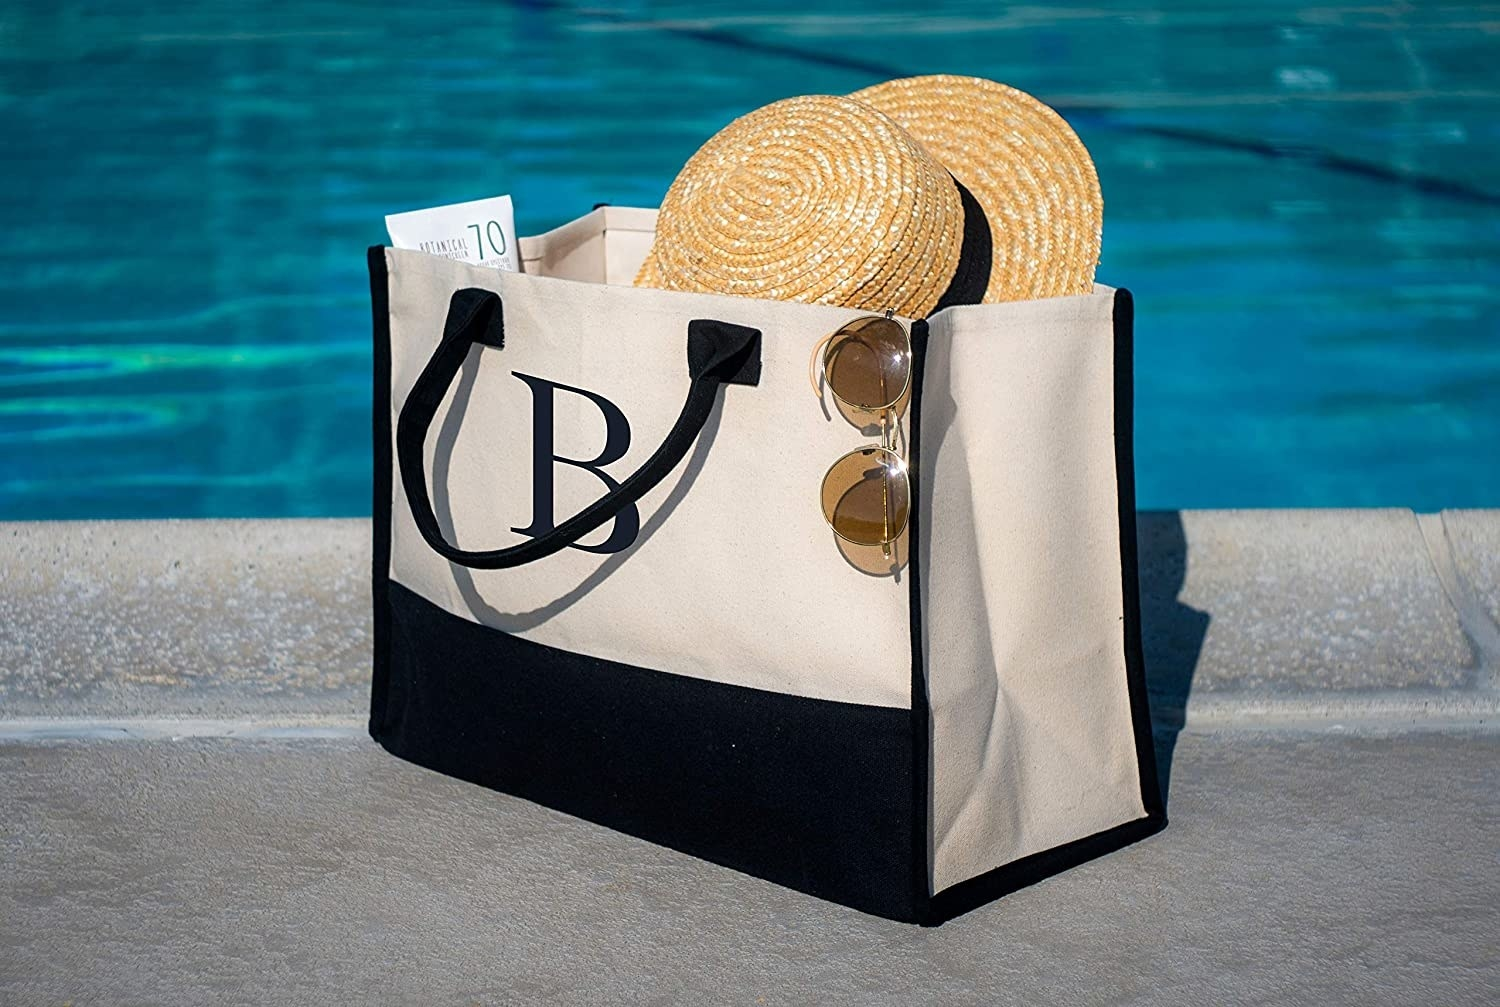 Monogram tote bag with the letter B